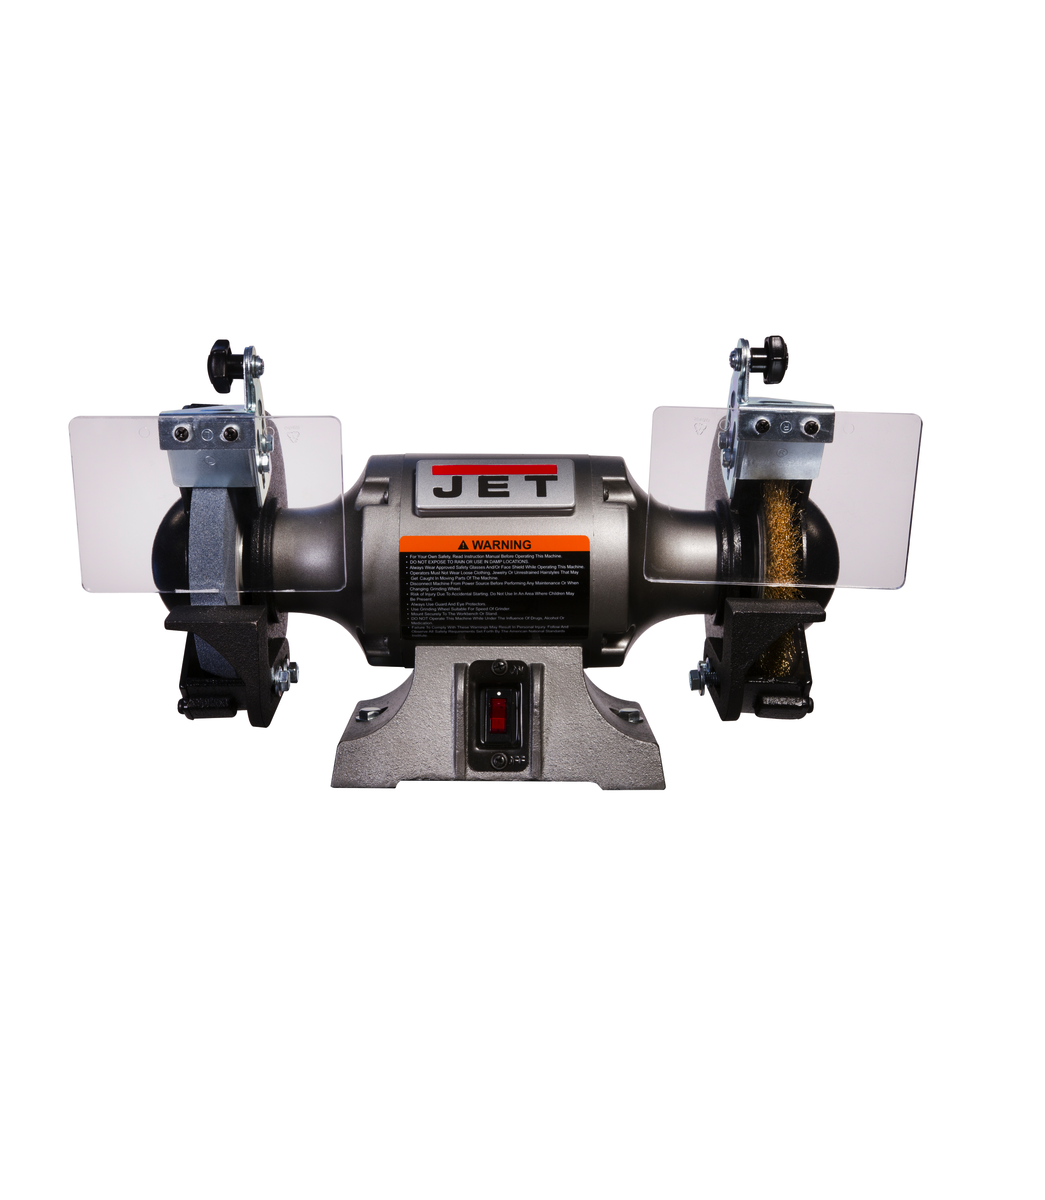 JBG-6W Shop Grinder with Grinding Wheel and Wire Wheel